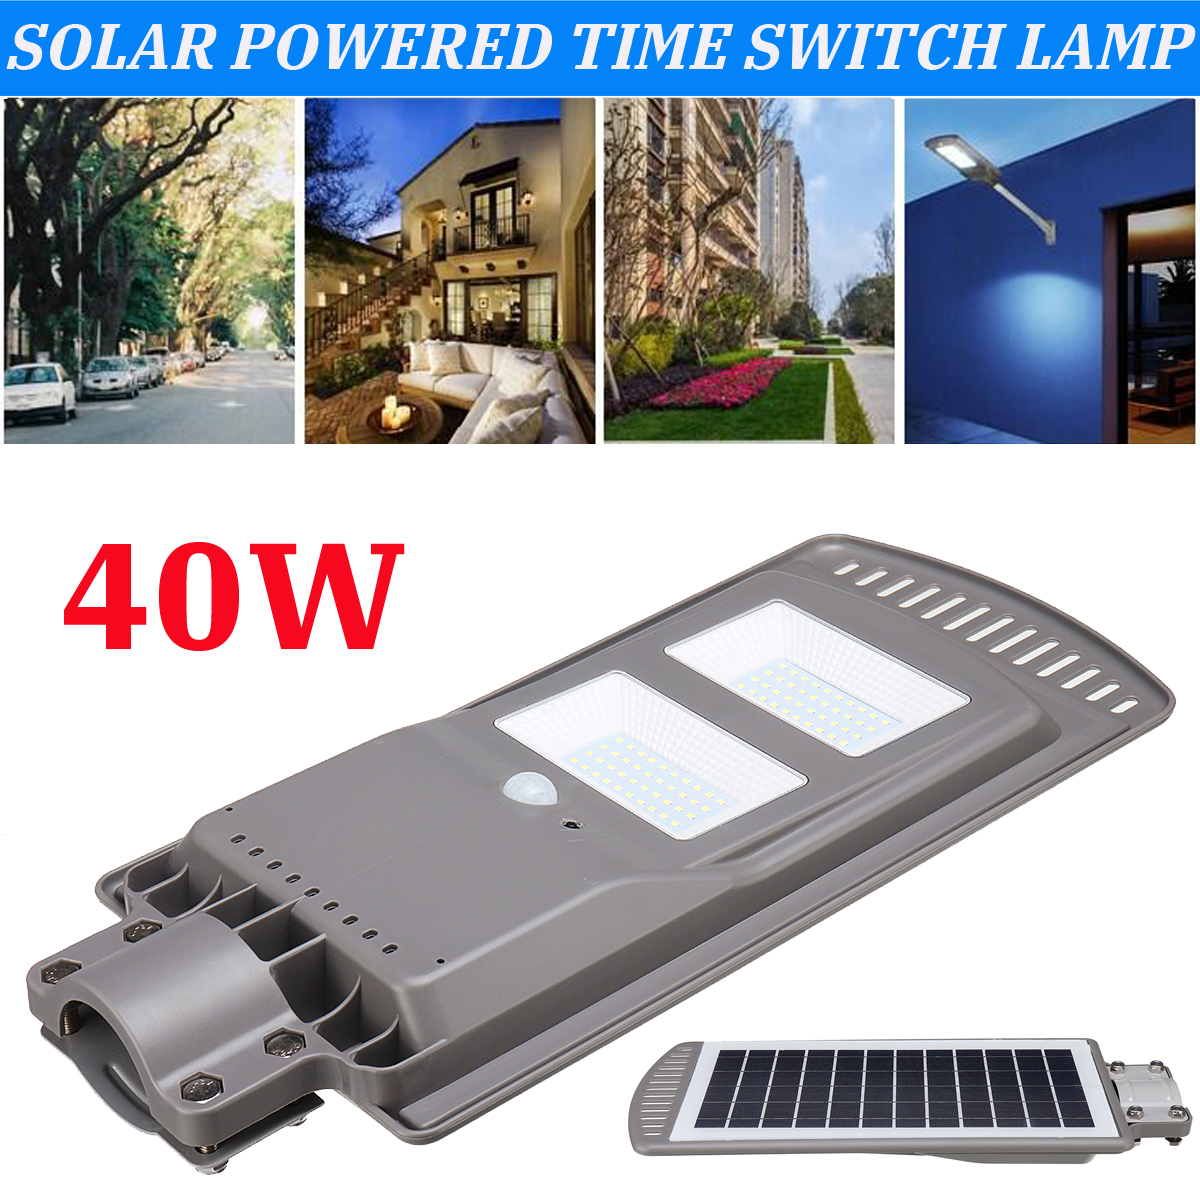 цена на New 40W Solar Powered Panel LED Solar Street Light All-in-1 Time Switch Waterproof IP67 Wall Lighting Lamp for Outdoor Garden